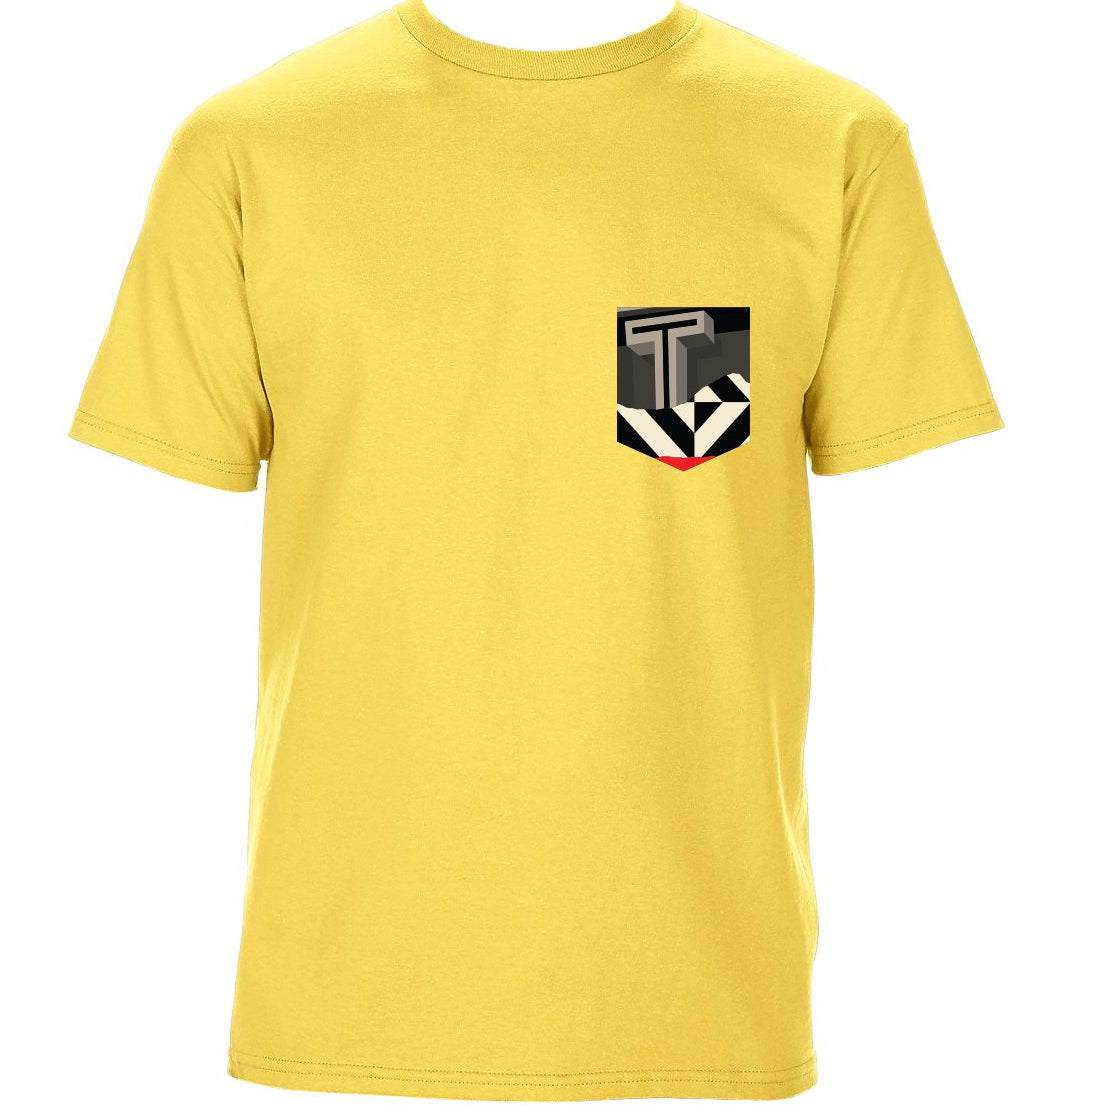 TRAV MSK LIMITED EDITION POCKET T-SHIRT (YELLOW / RED T GRAPHIC)